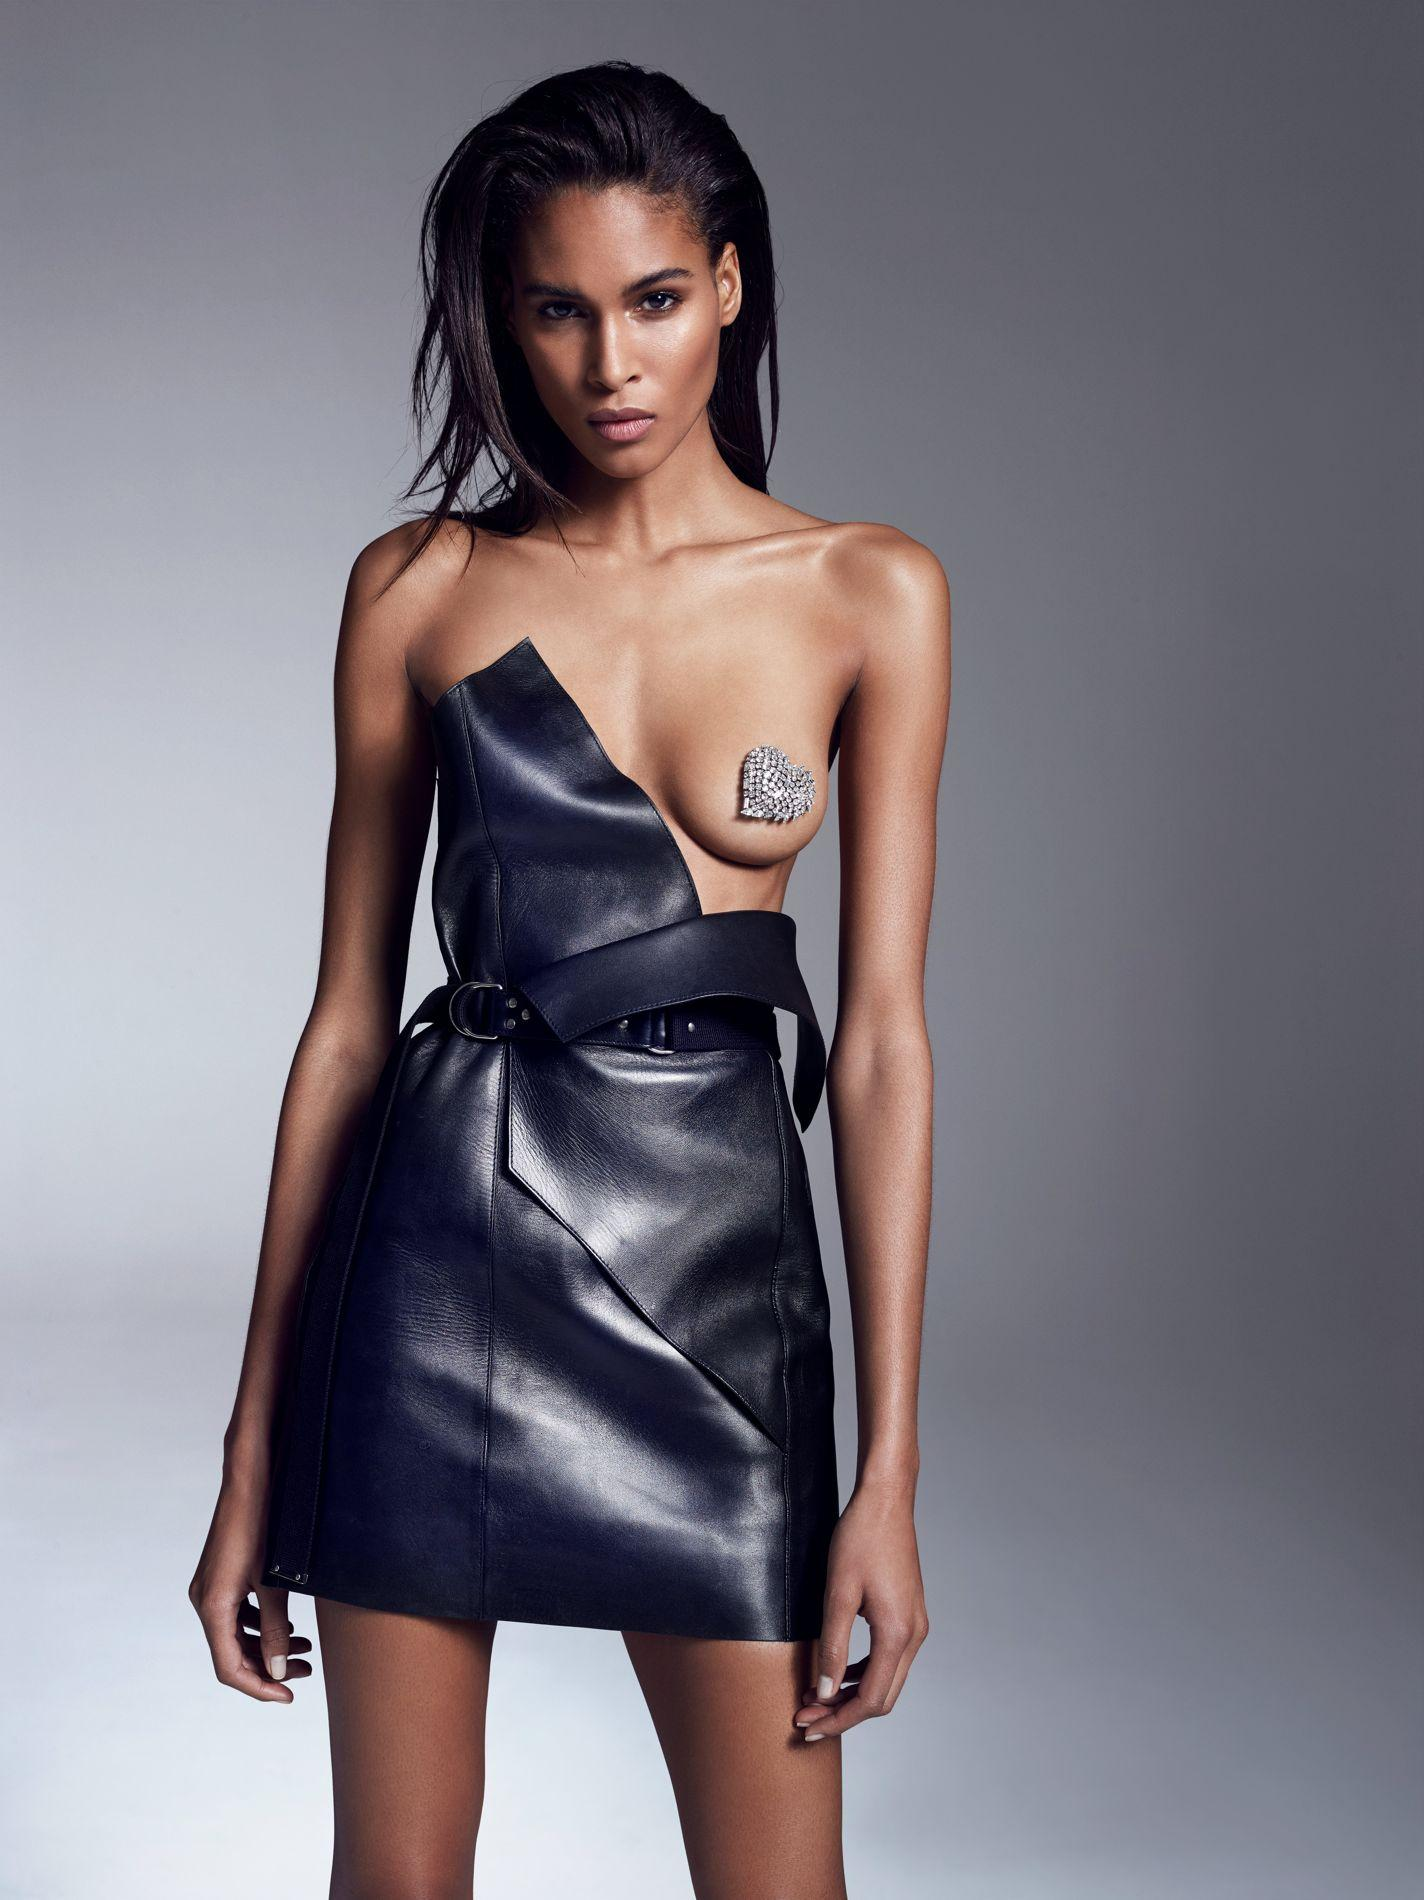 Cindy Bruna ) naked (36 photo), Pussy, Is a cute, Instagram, bra 2019